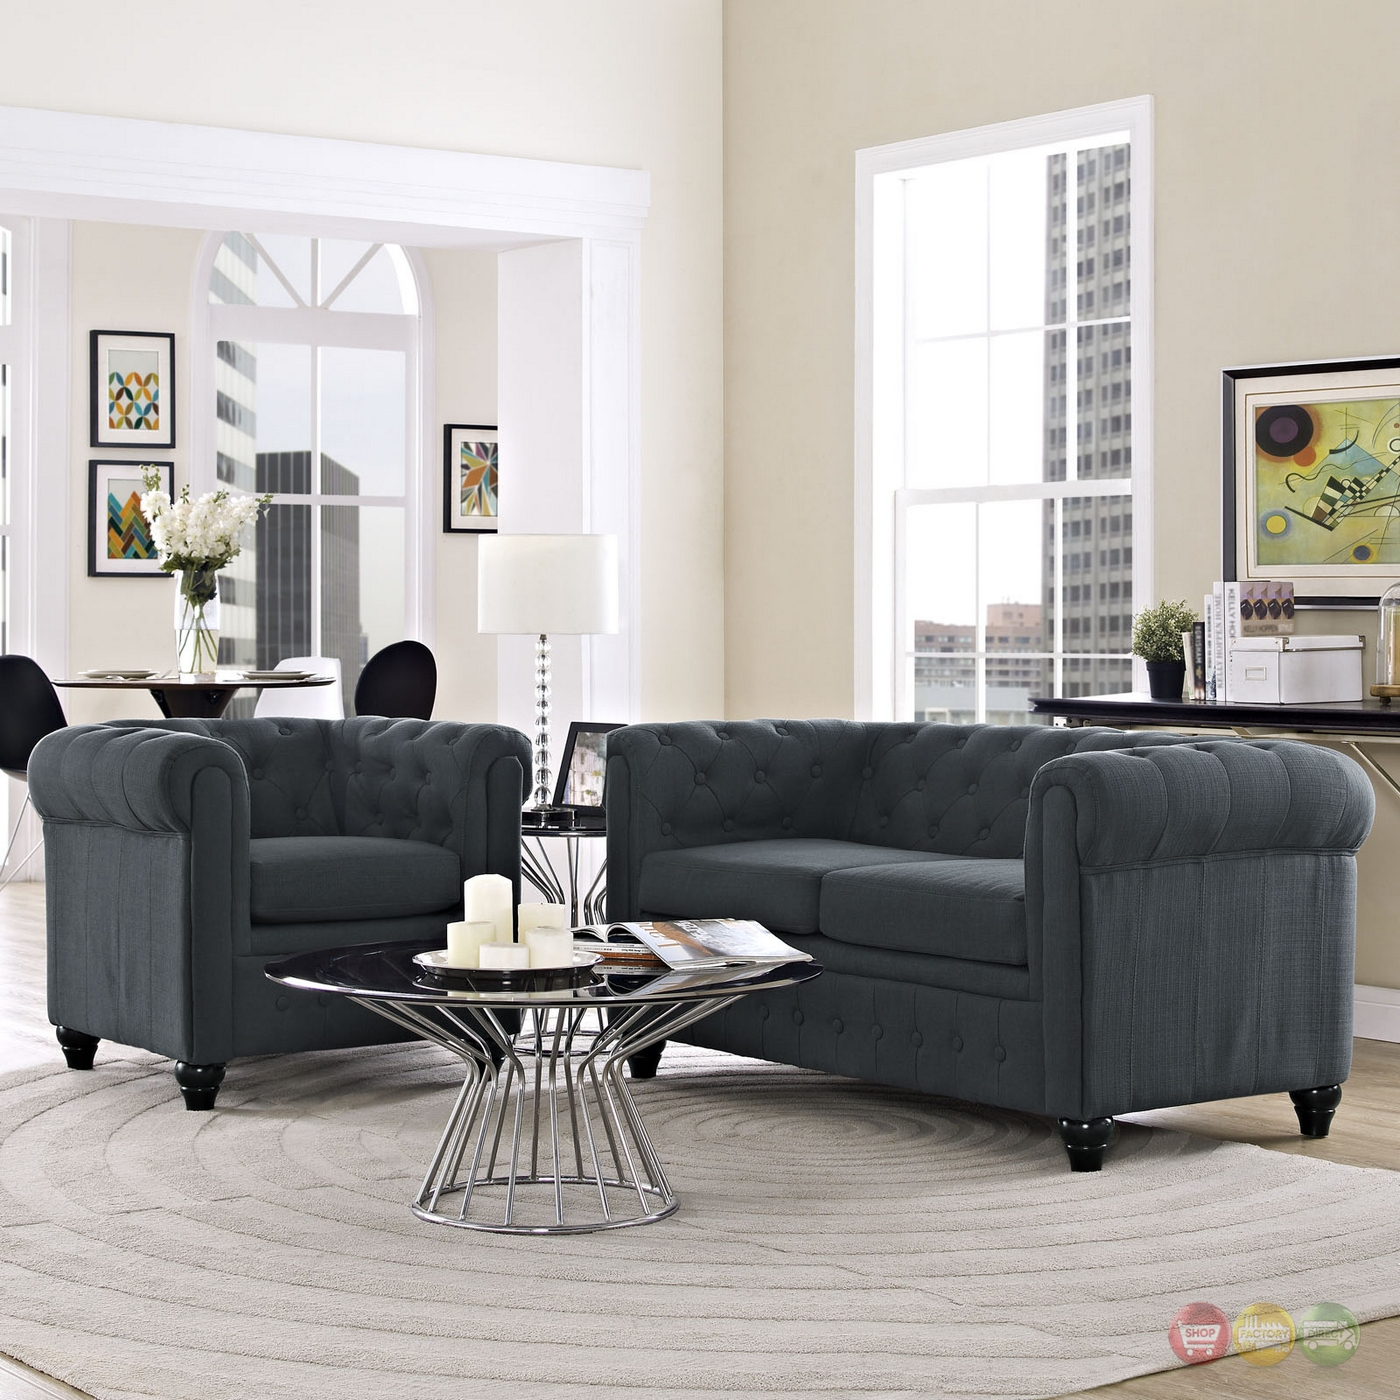 Earl Contemporary 2pc Fabric Upholstered Living Room Set Gray